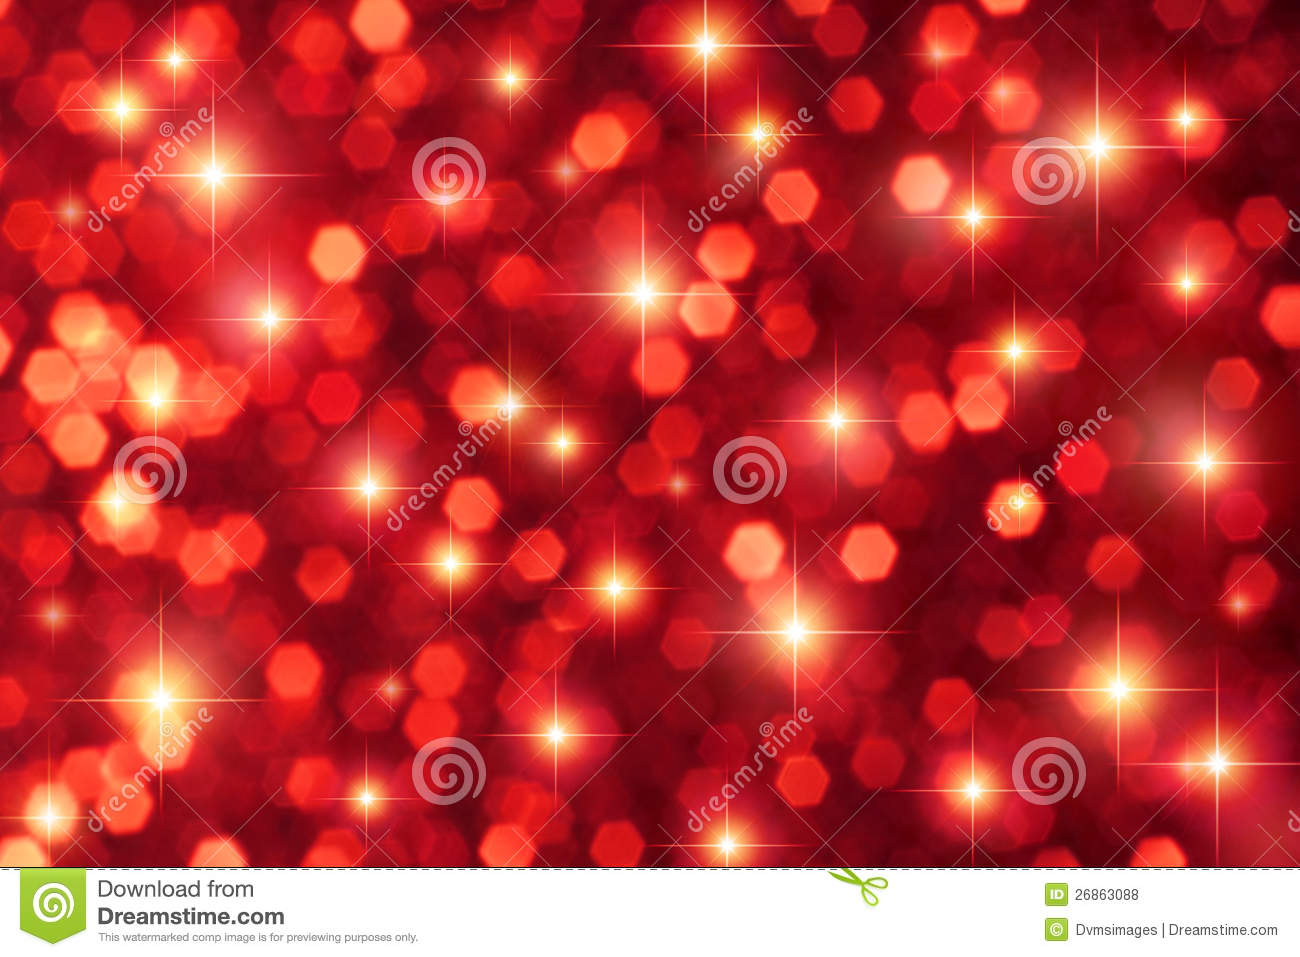 Red Stars Background Royalty Free Stock Photos - Image: 26863088